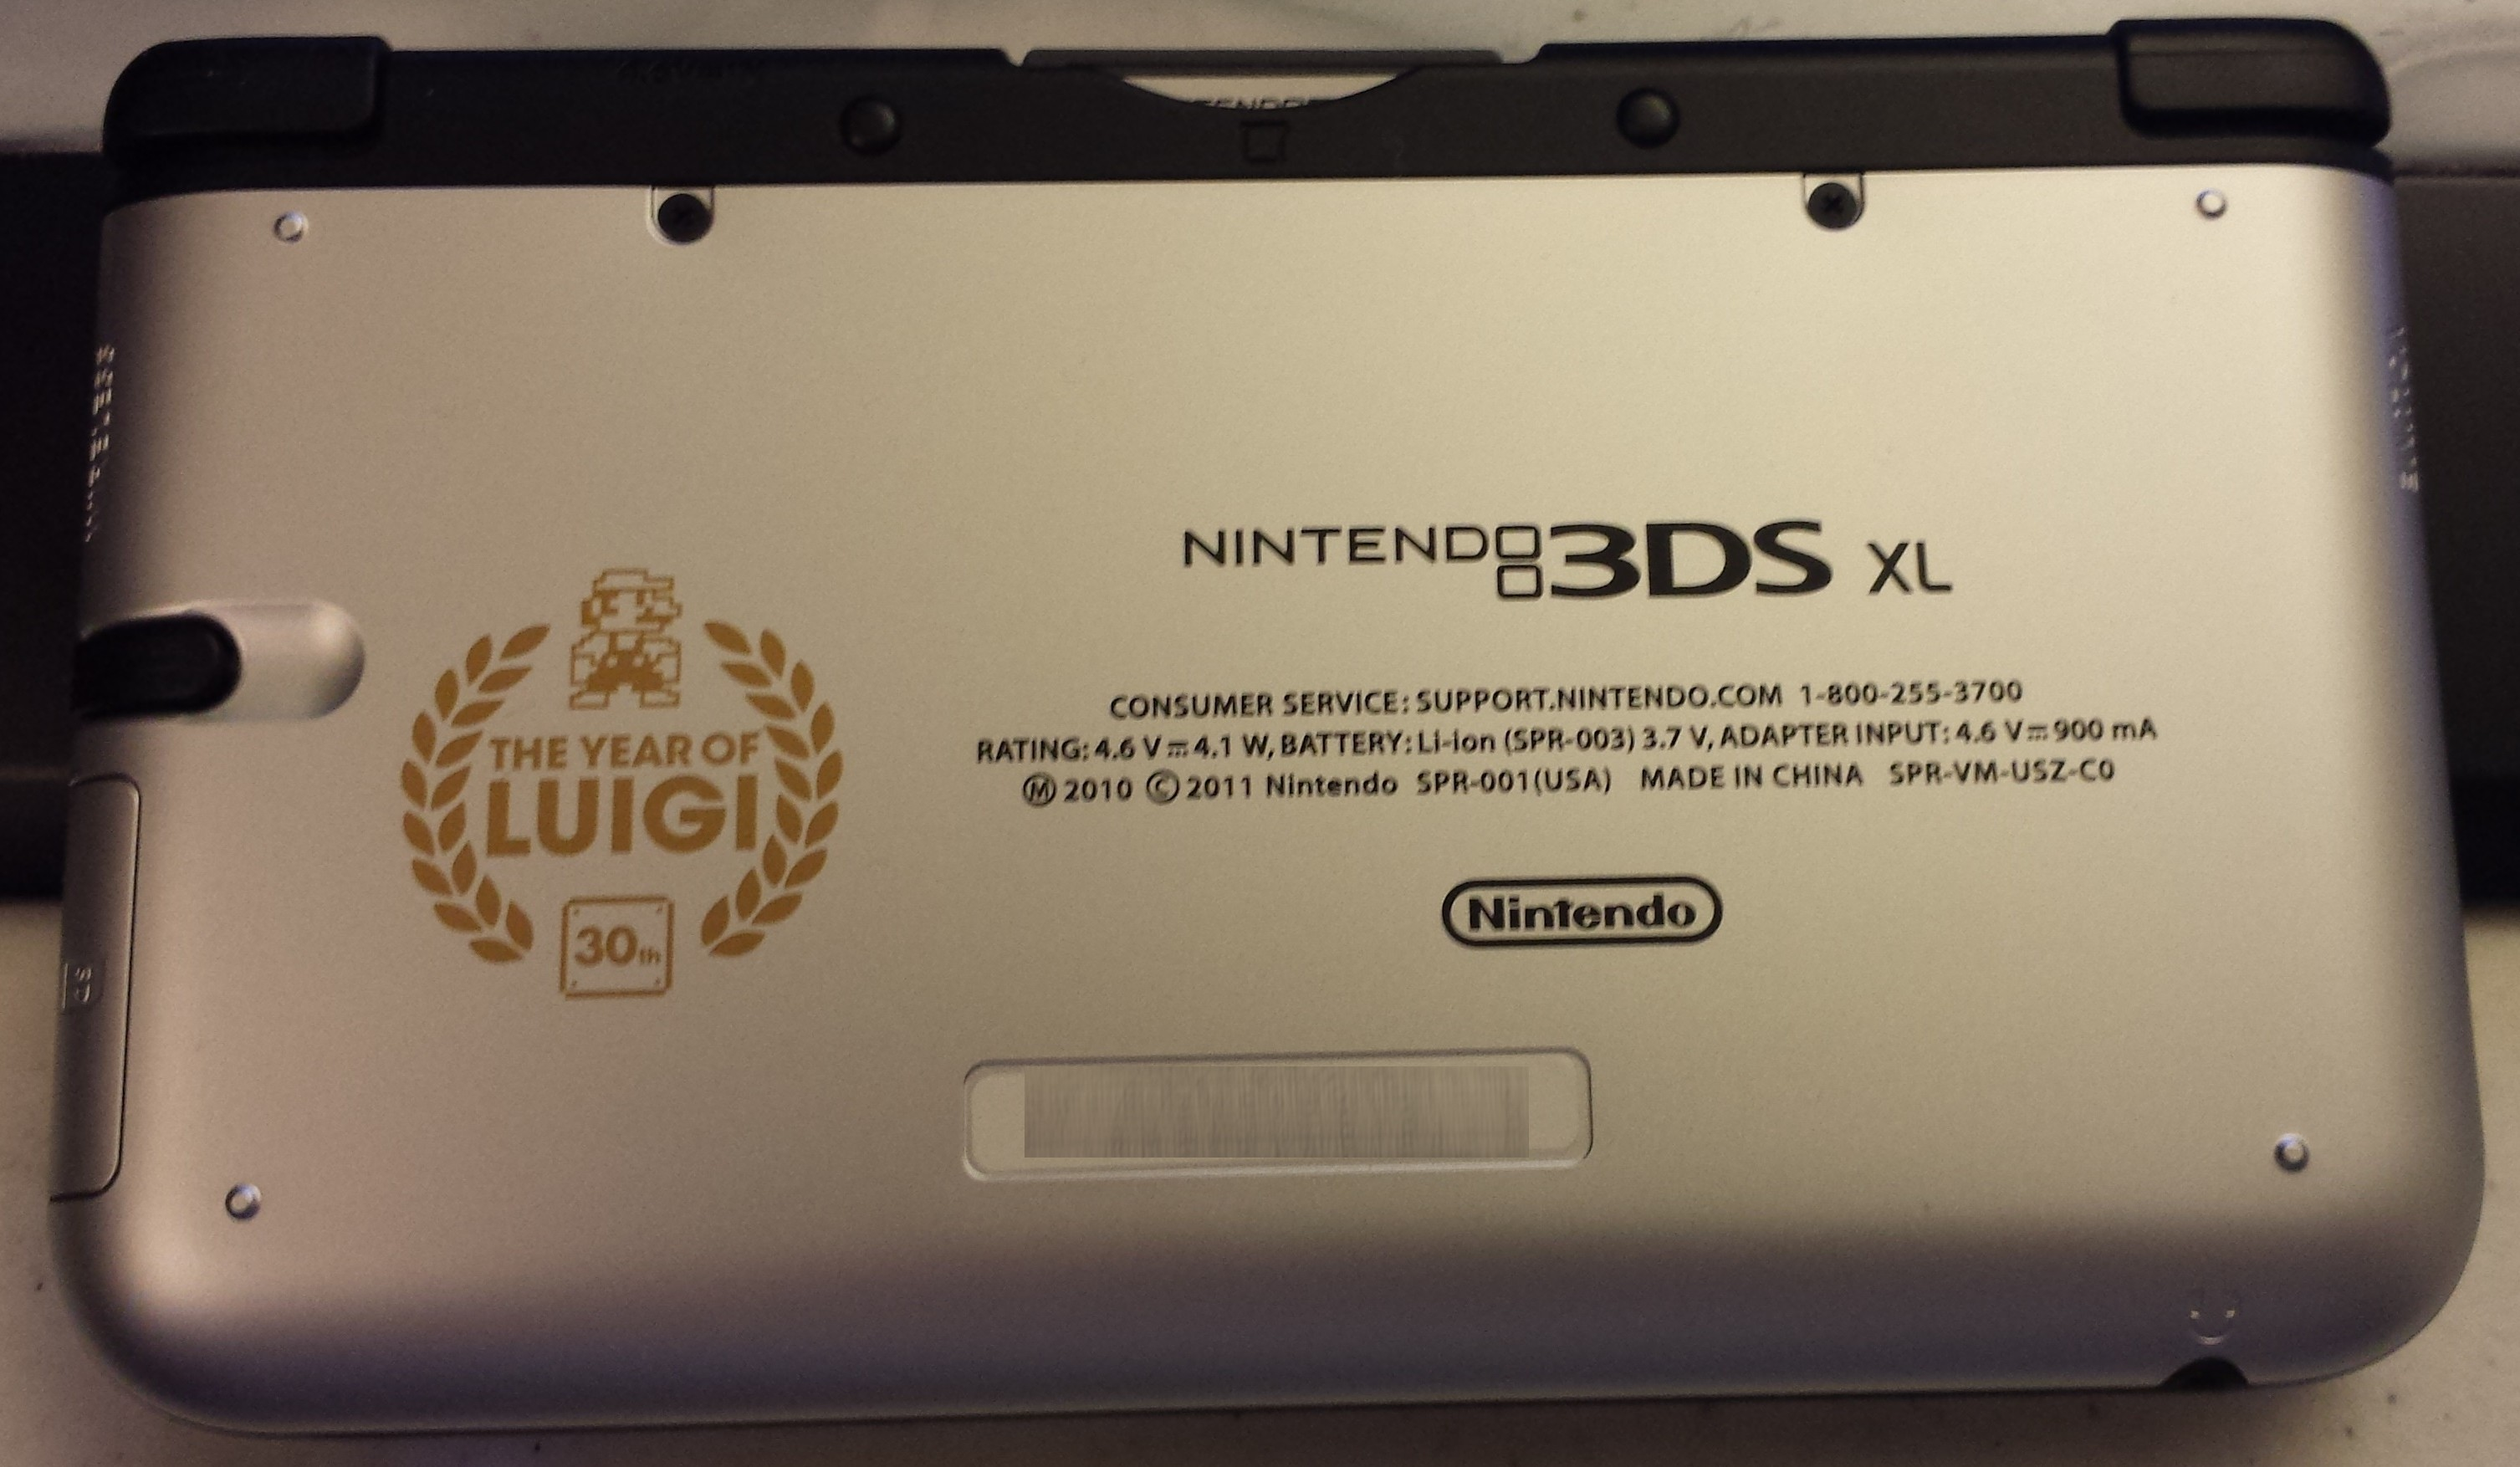 E Move 3ds Games To Sd Card